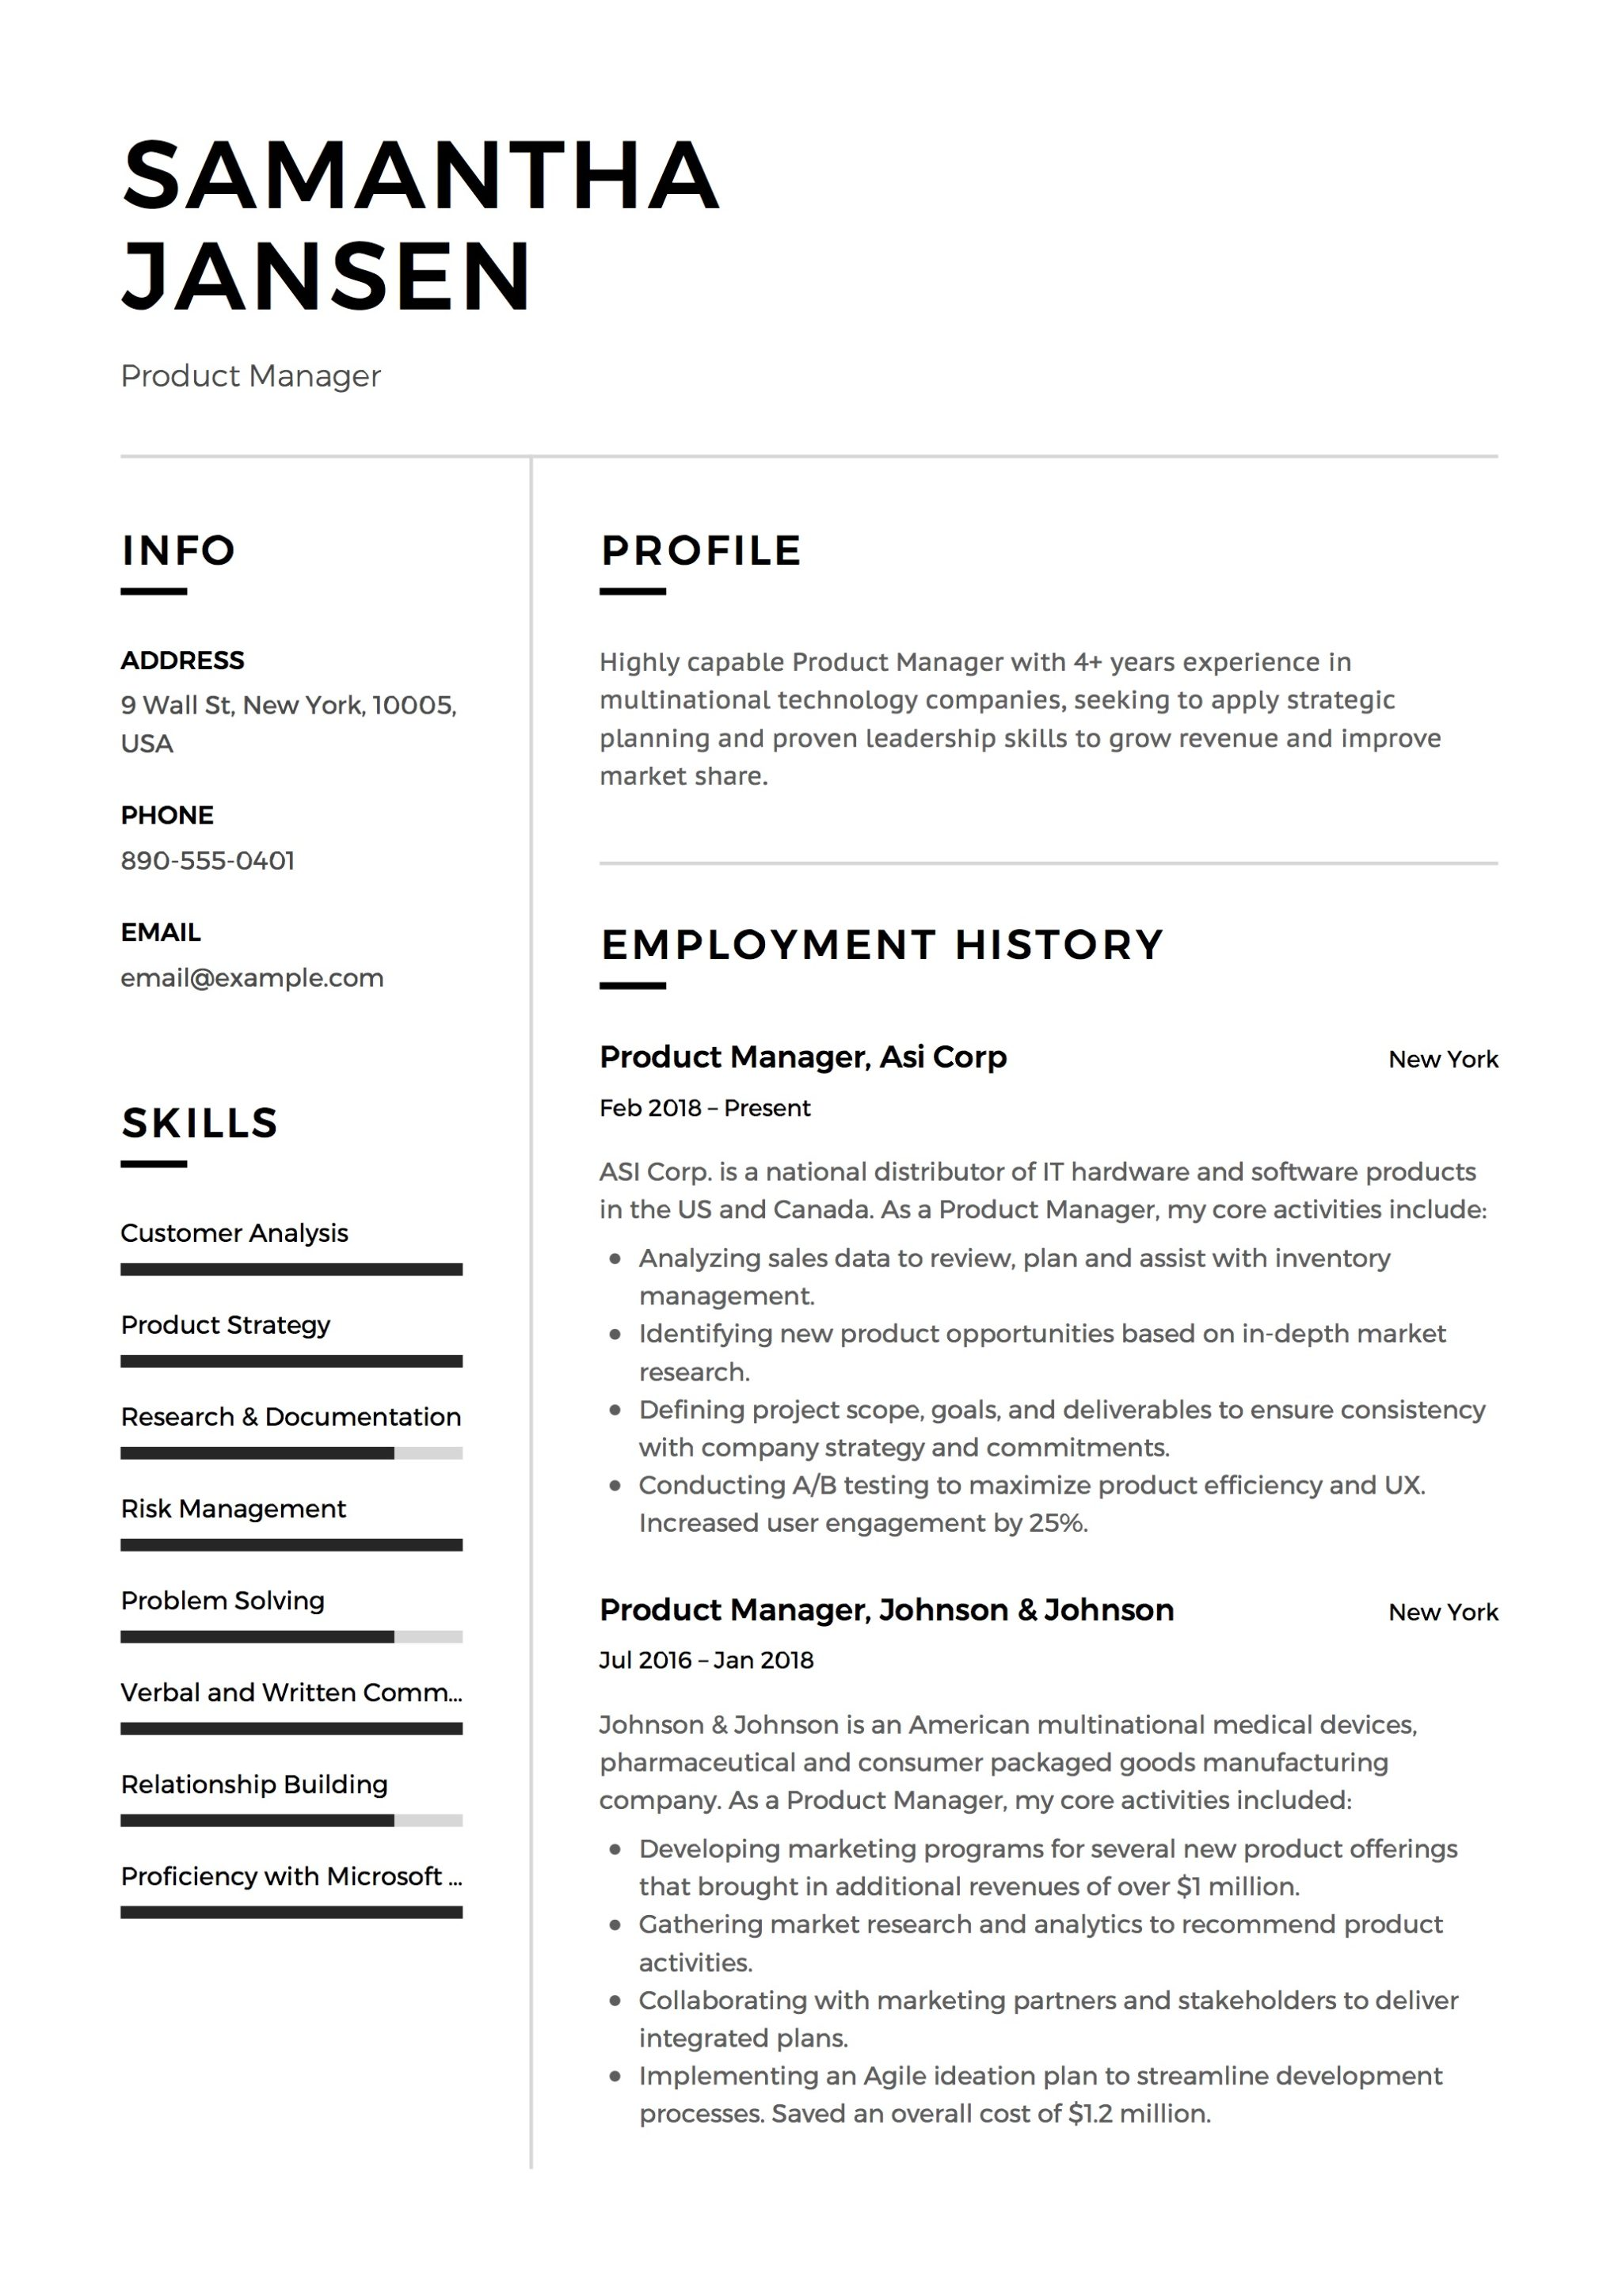 11x product manager resume sample resumevikingcom - Product Manager Resume